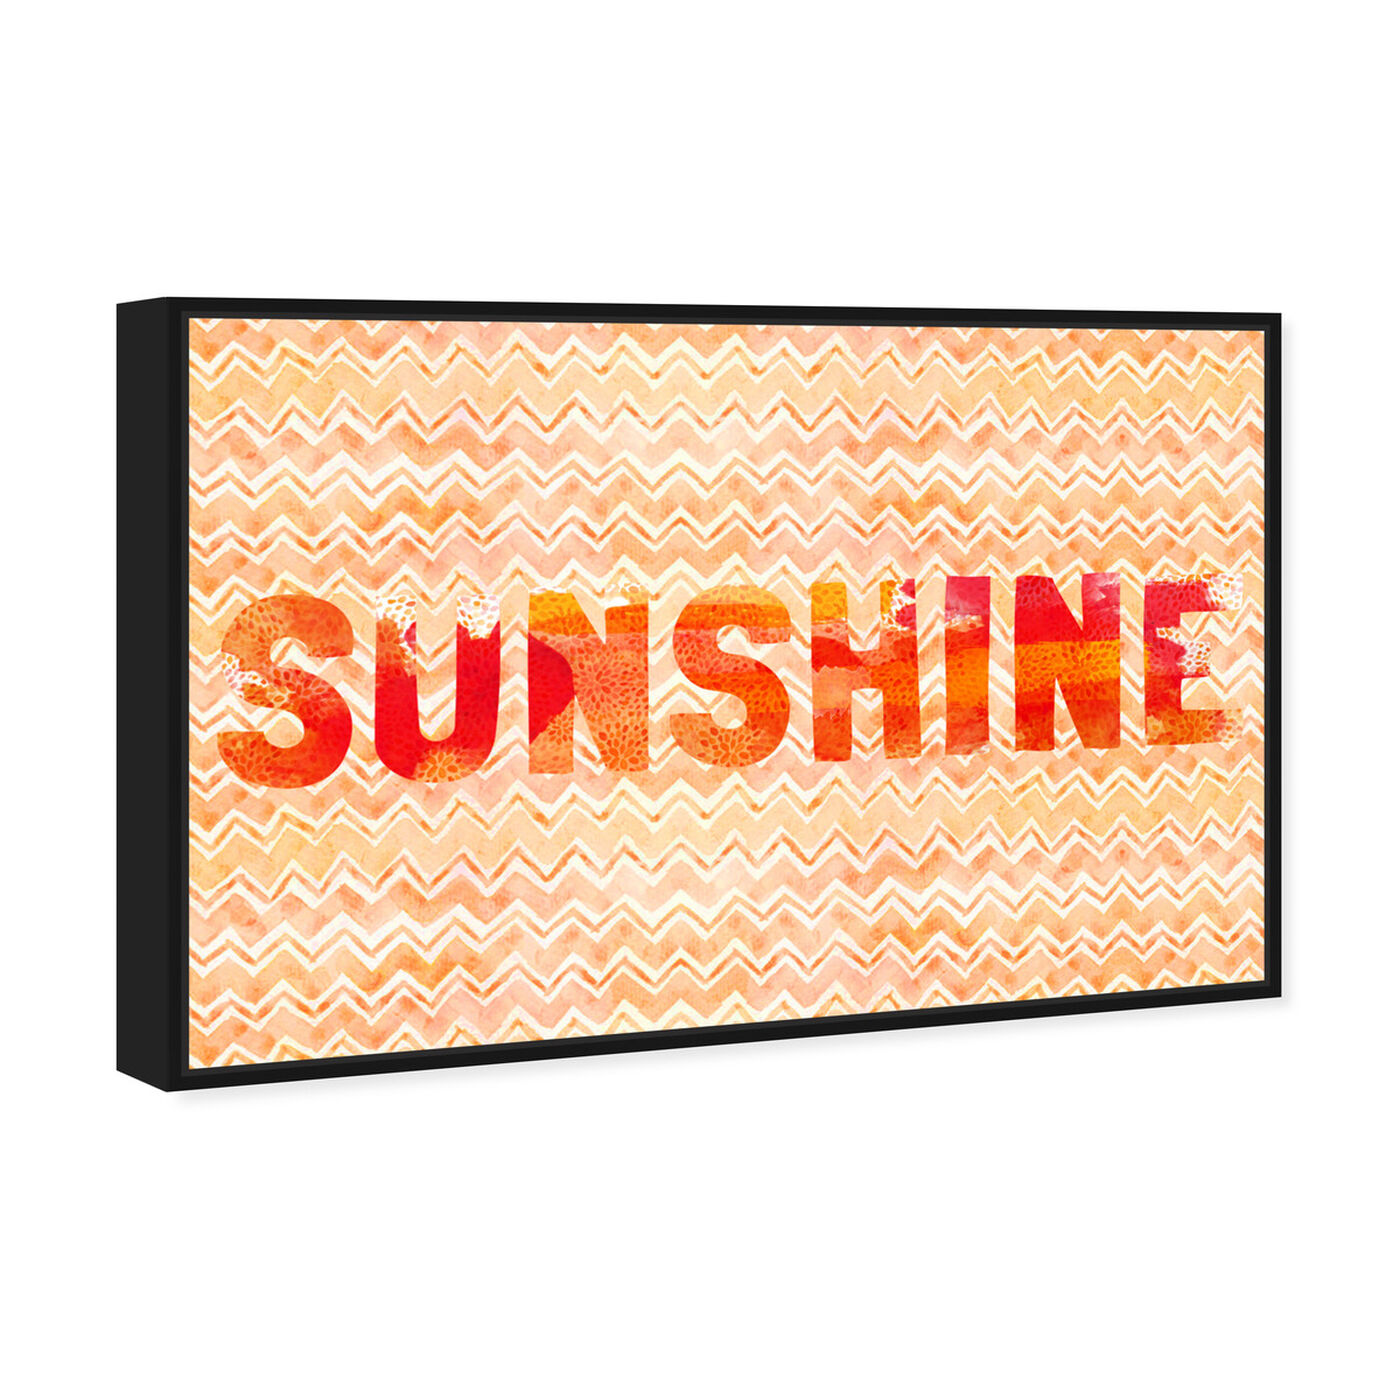 Angled view of Sunshine featuring typography and quotes and beauty quotes and sayings art.